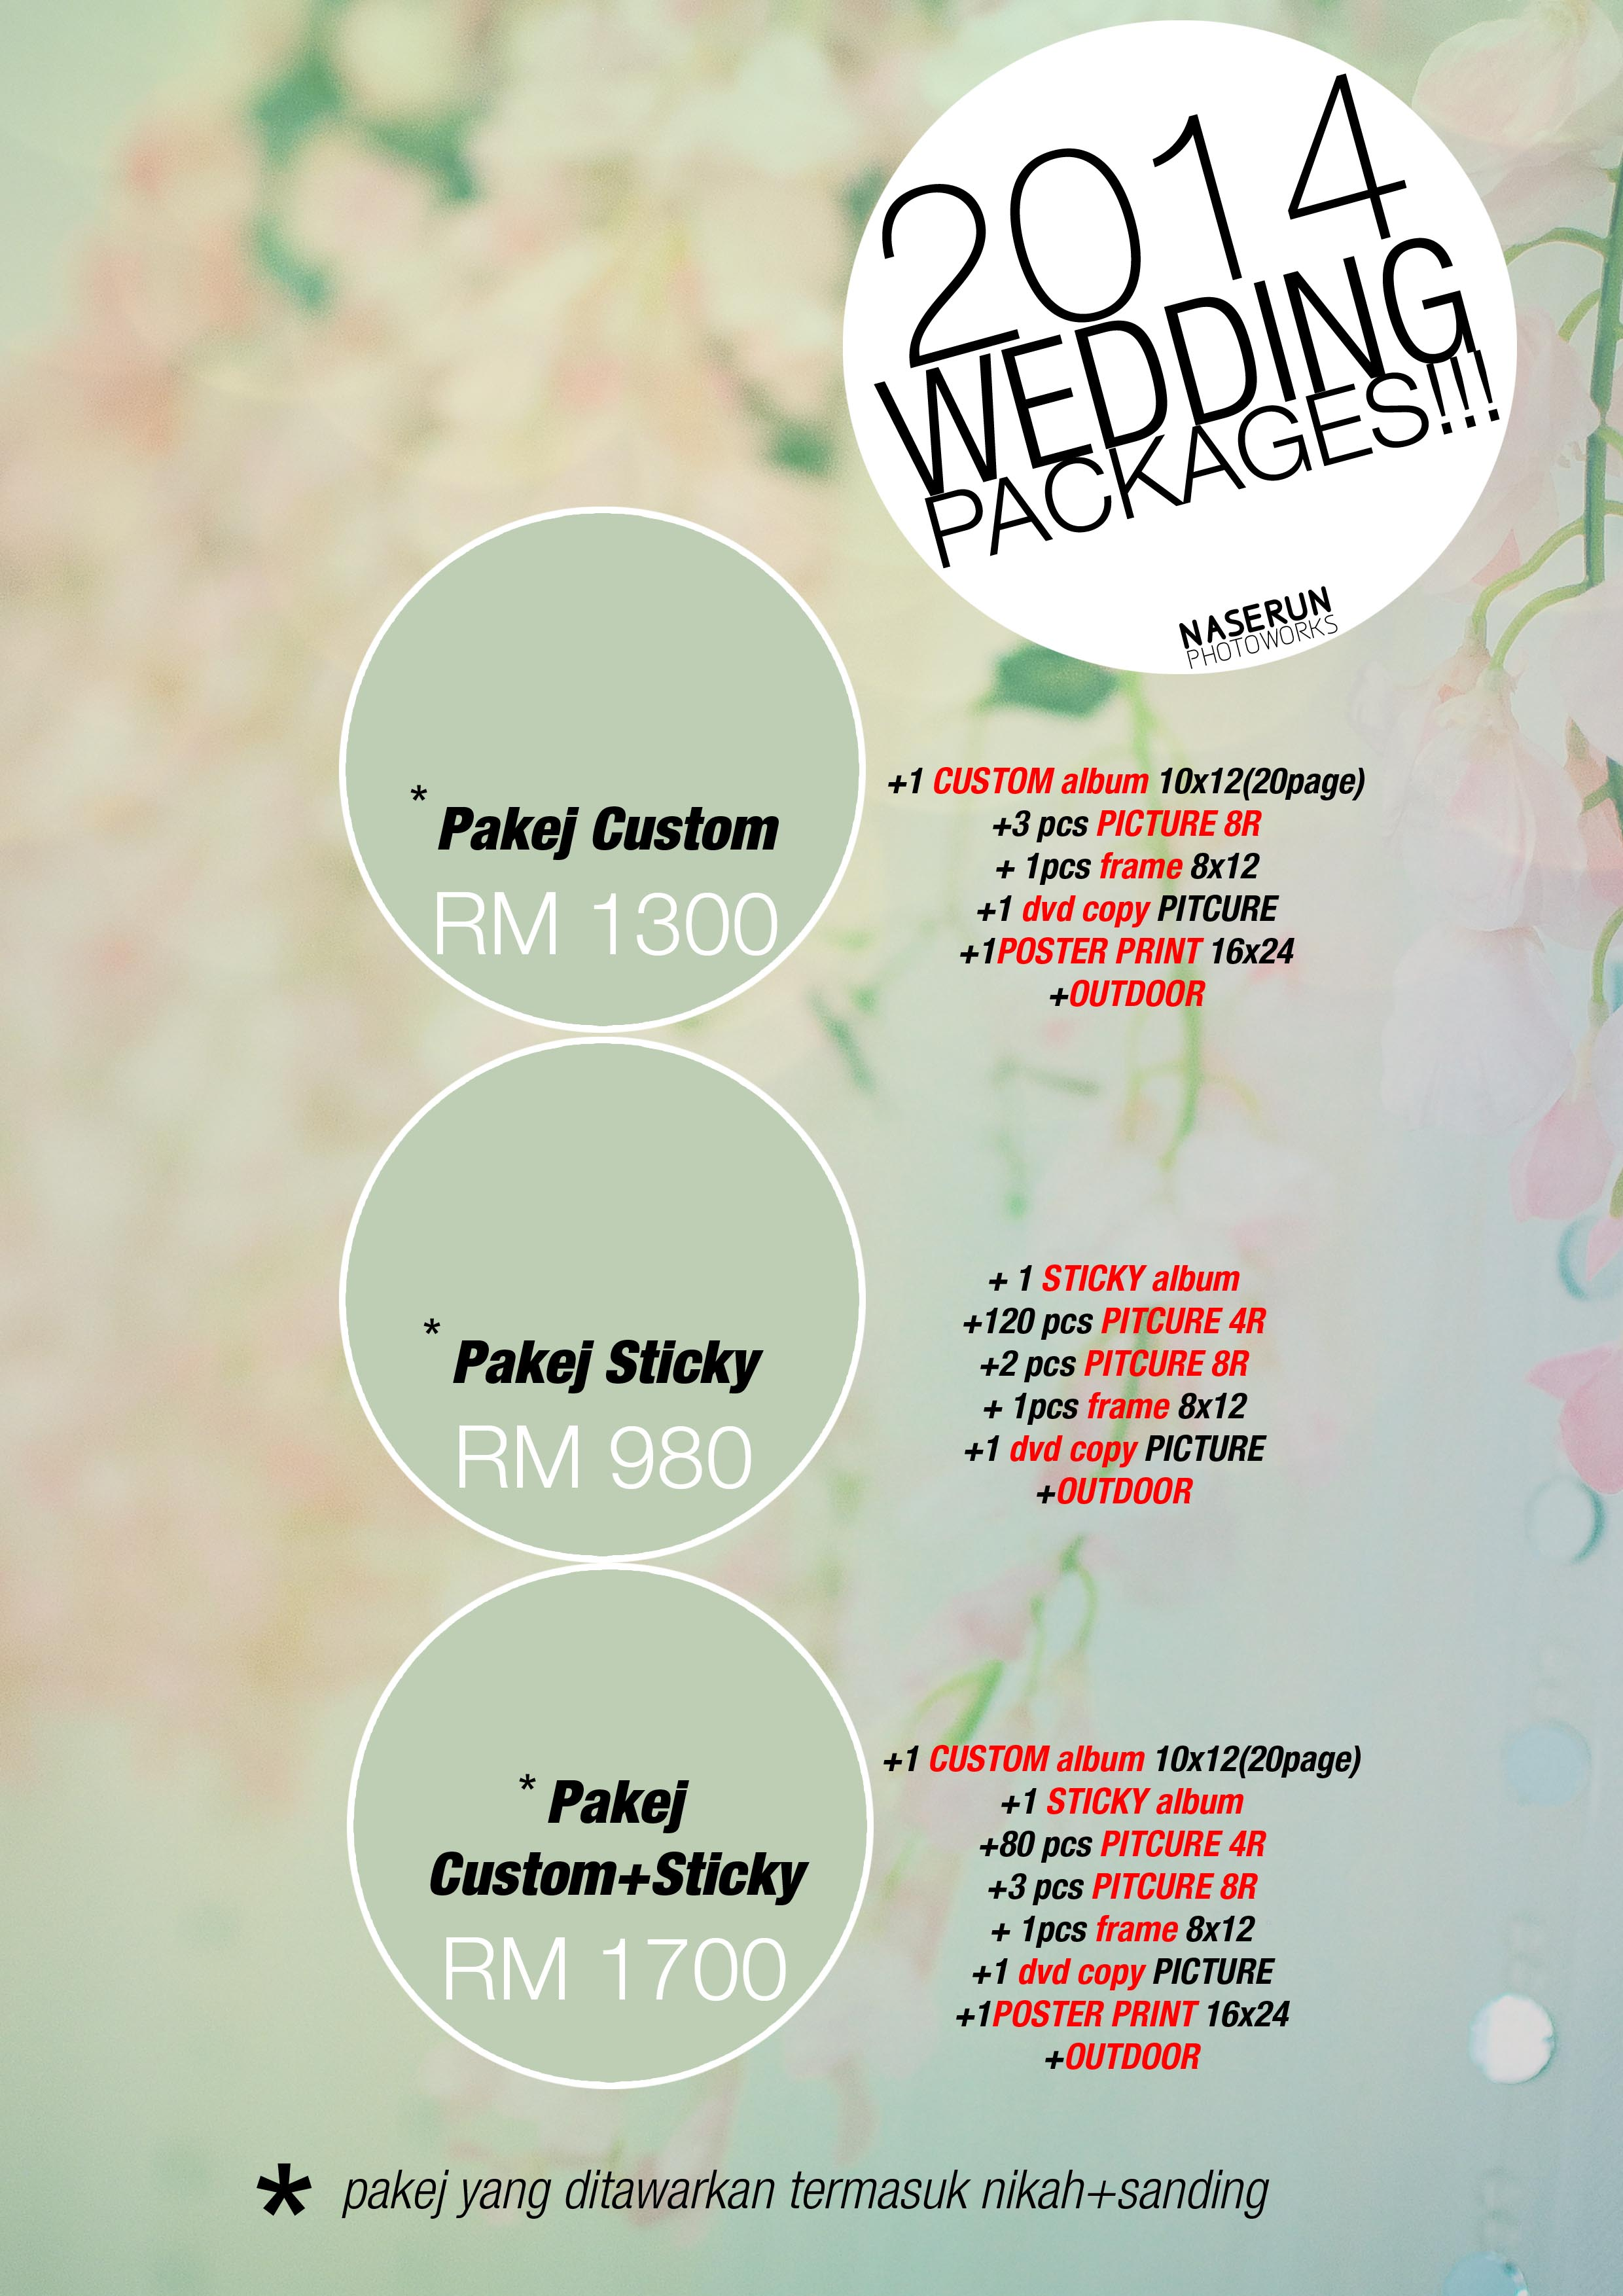 wedding packages2014